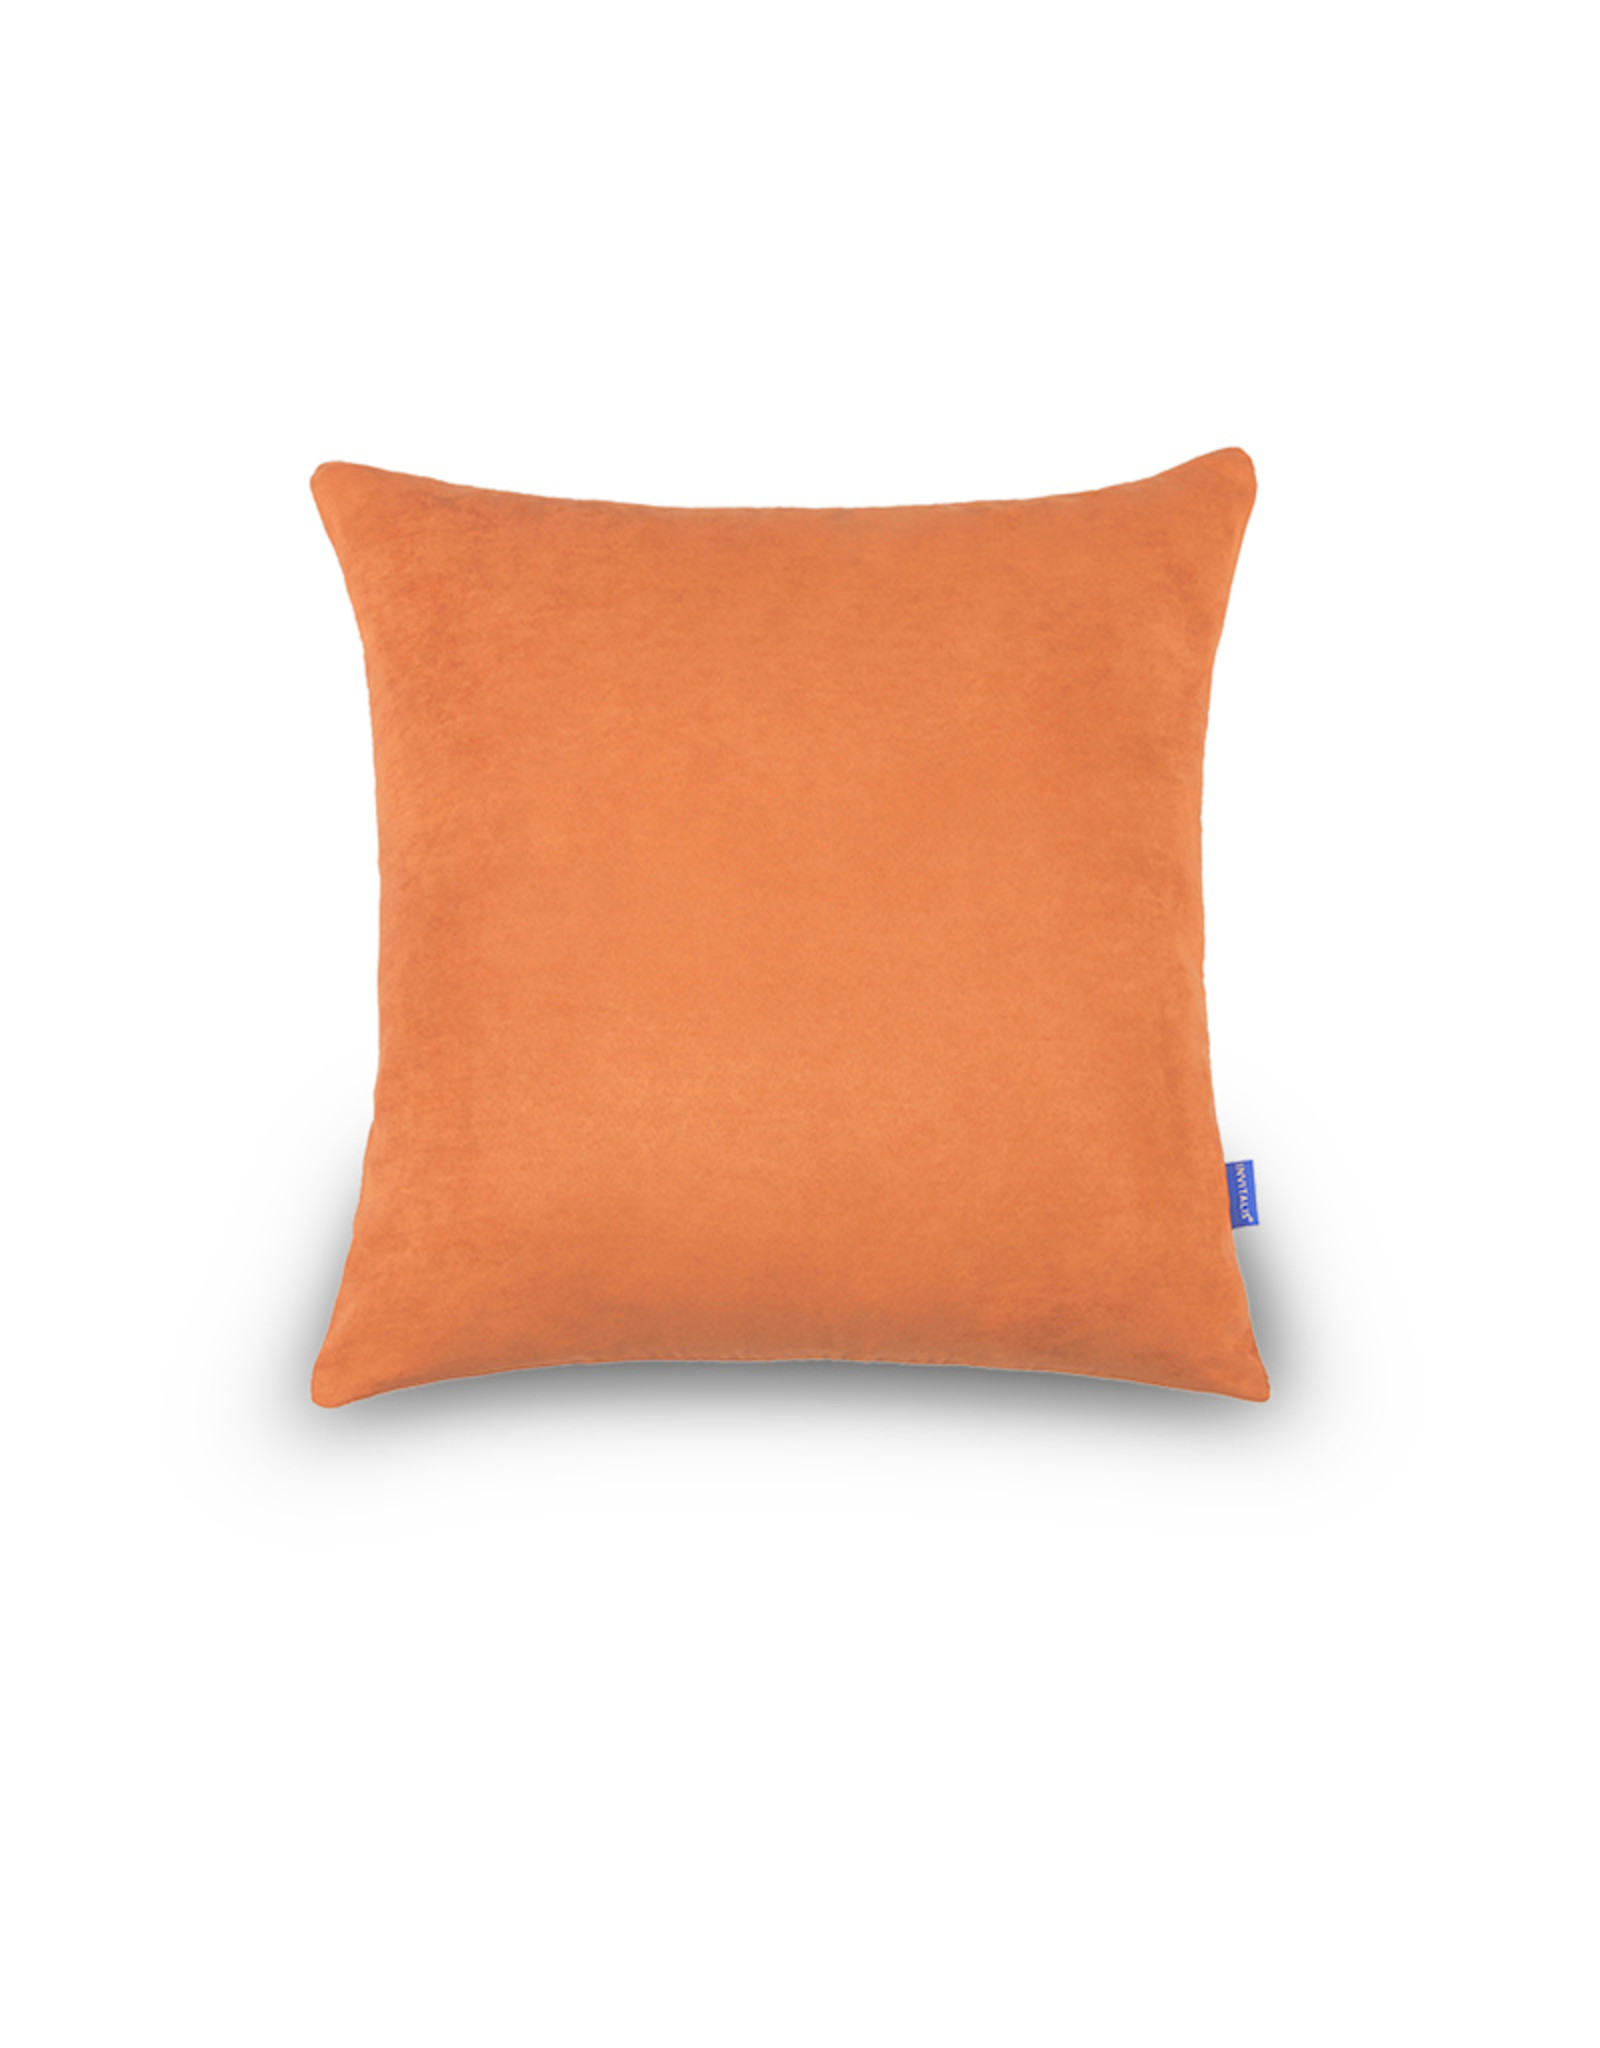 INVITALIS Vitalymed Soft - Orange